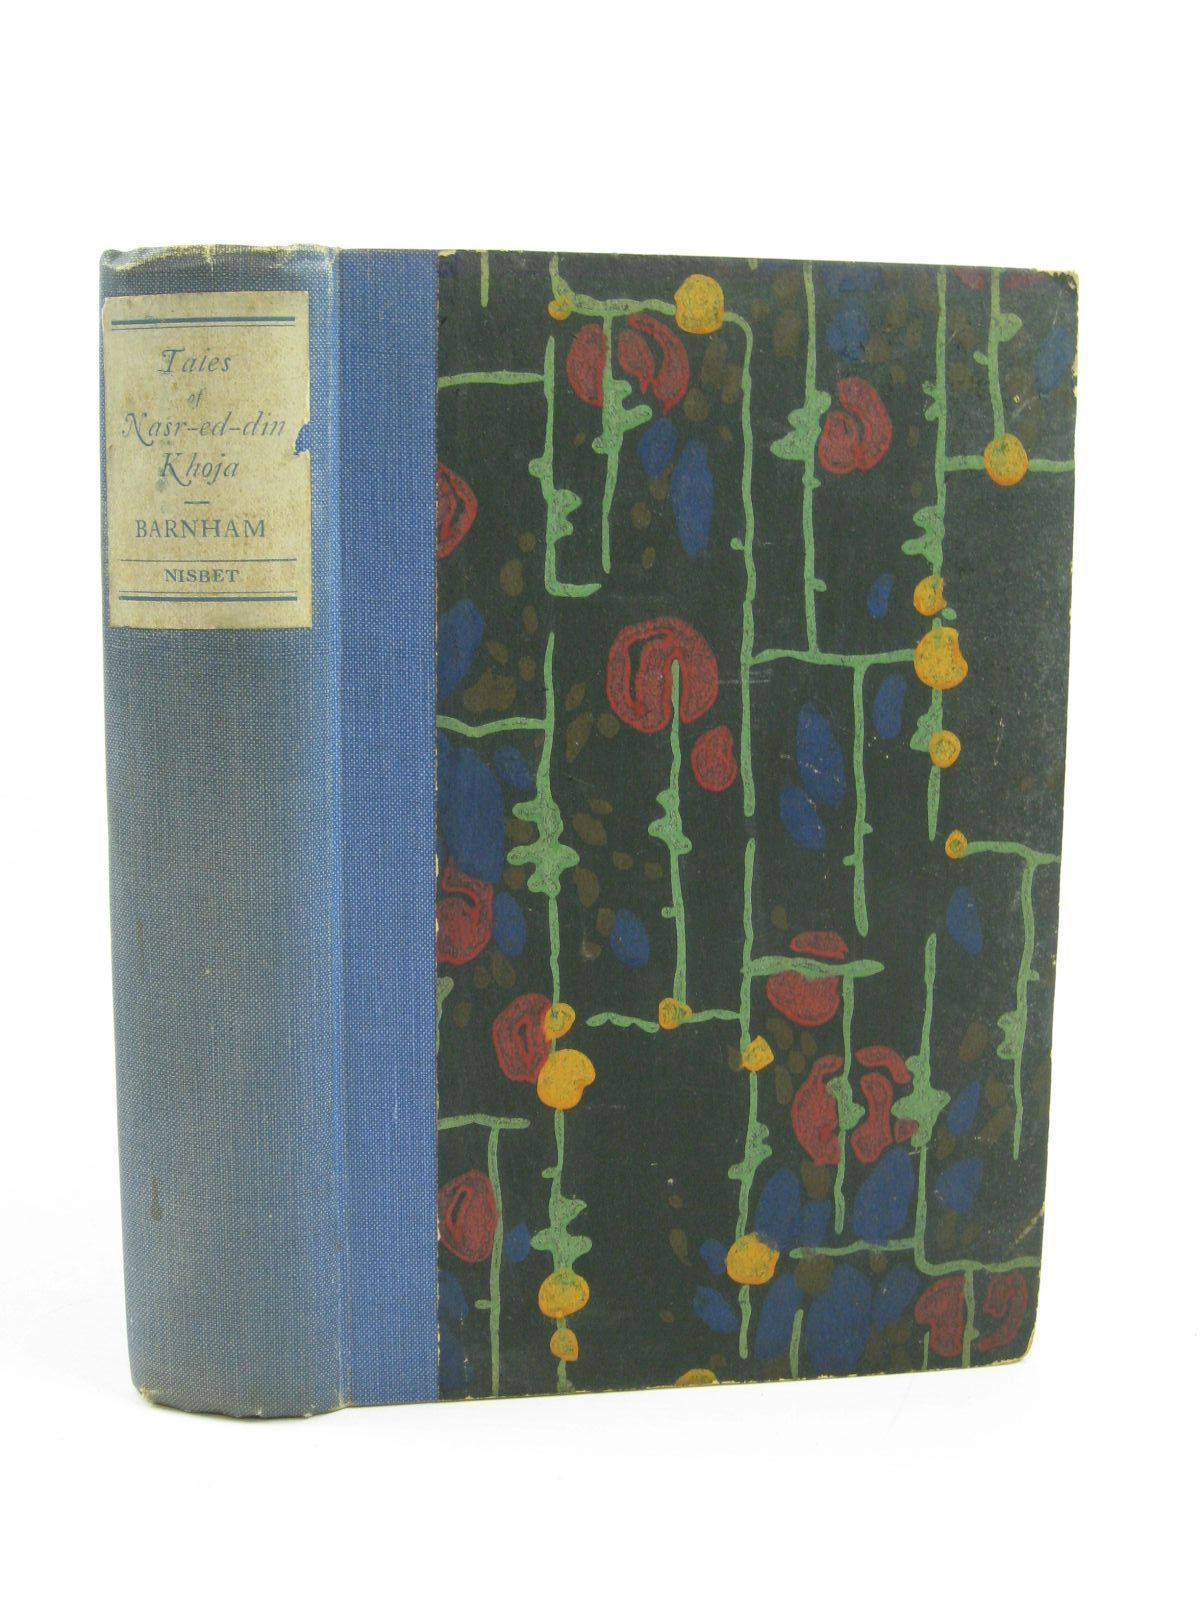 Photo of TALES OF NASR-ED-DIN KHOJA written by Barnham, Henry D. published by Nisbet & Co. Ltd. (STOCK CODE: 1507017)  for sale by Stella & Rose's Books